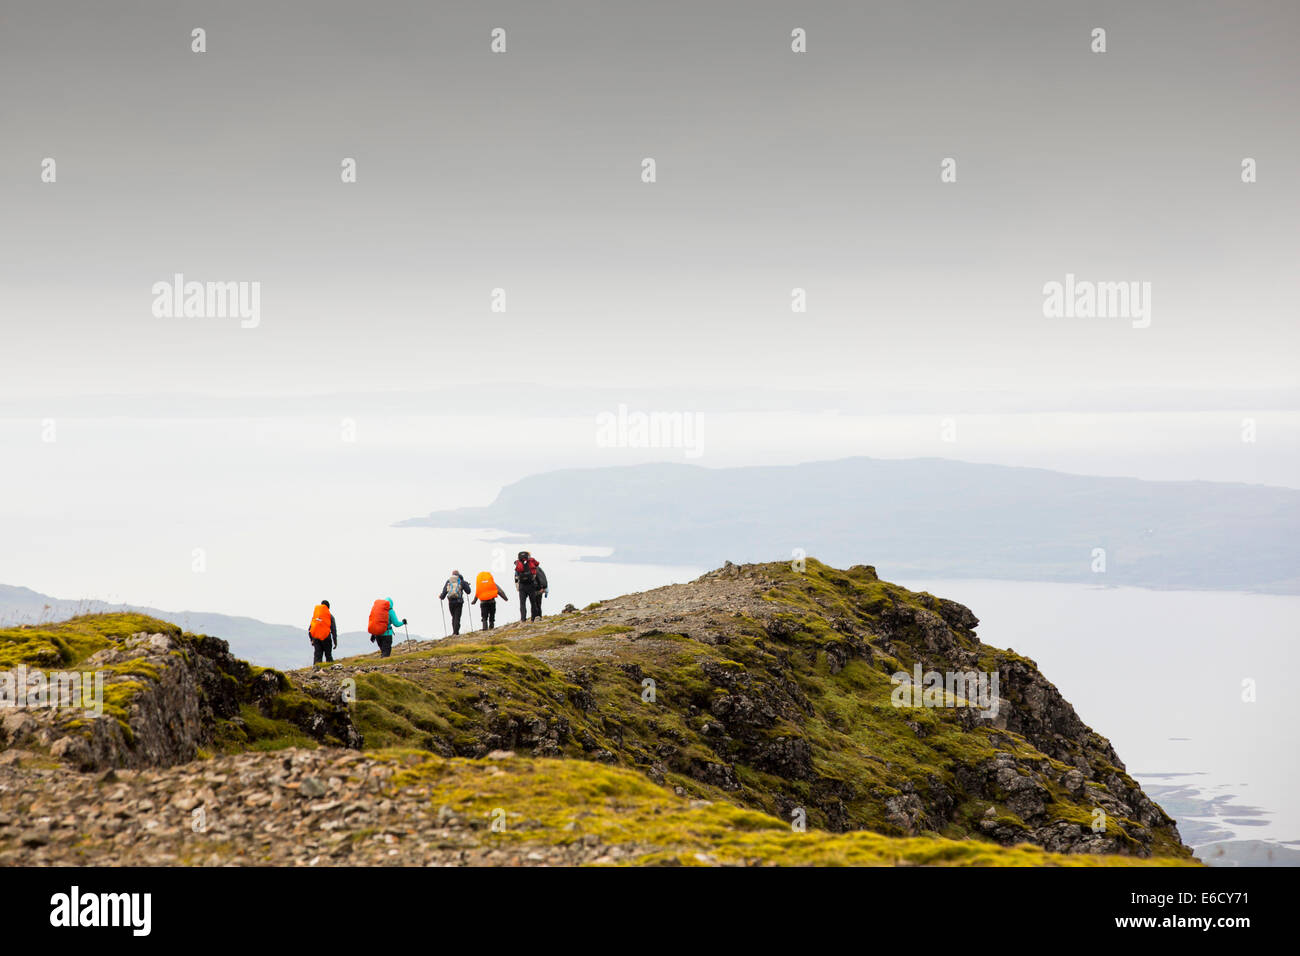 A walking group on the summit of Munro on Ben More, Isle of Mull, Scotland, UK, looking down to loch na Keal. - Stock Image